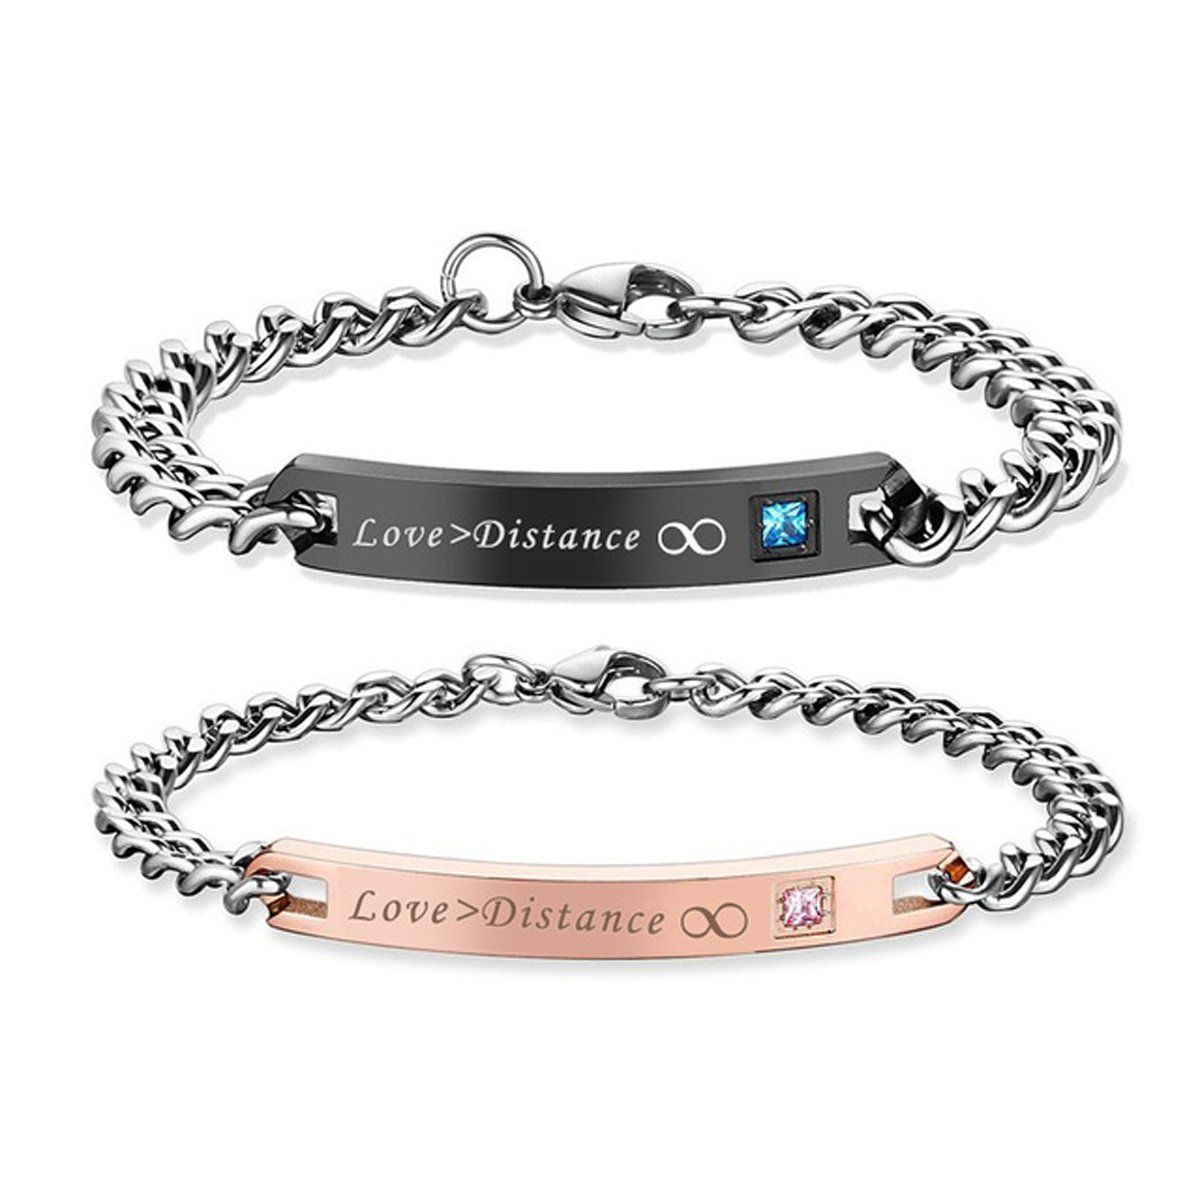 Gift for Lover His Queen Her King Stainless Steel Couple Bracelets For Women Men Jewelry Matching Set (Love > Distance ∞)